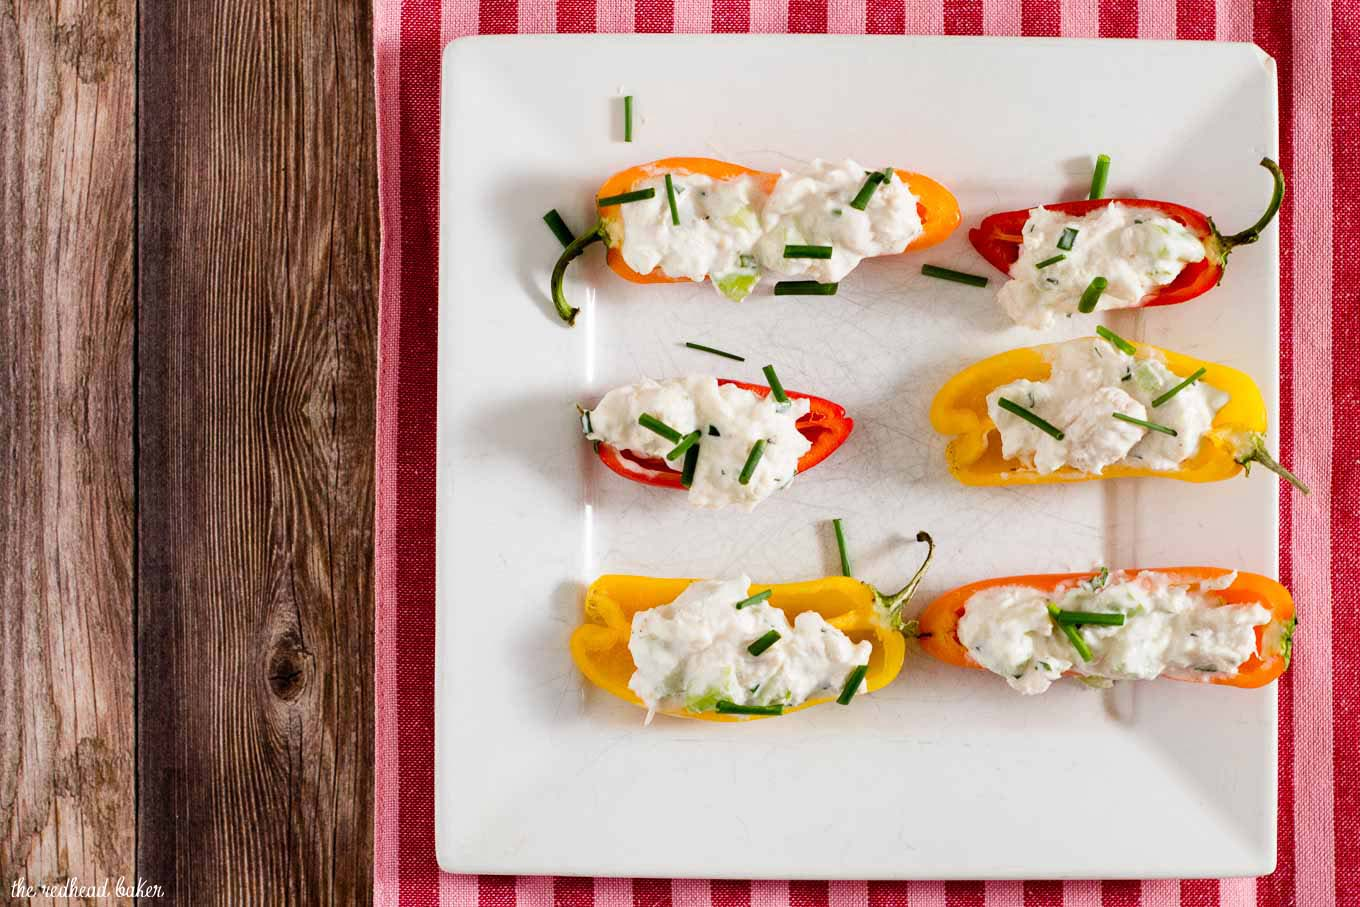 Need a last-minute Valentine's Day appetizer? Try these crab salad stuffed mini peppers! They have complex flavor and don't require any cooking!